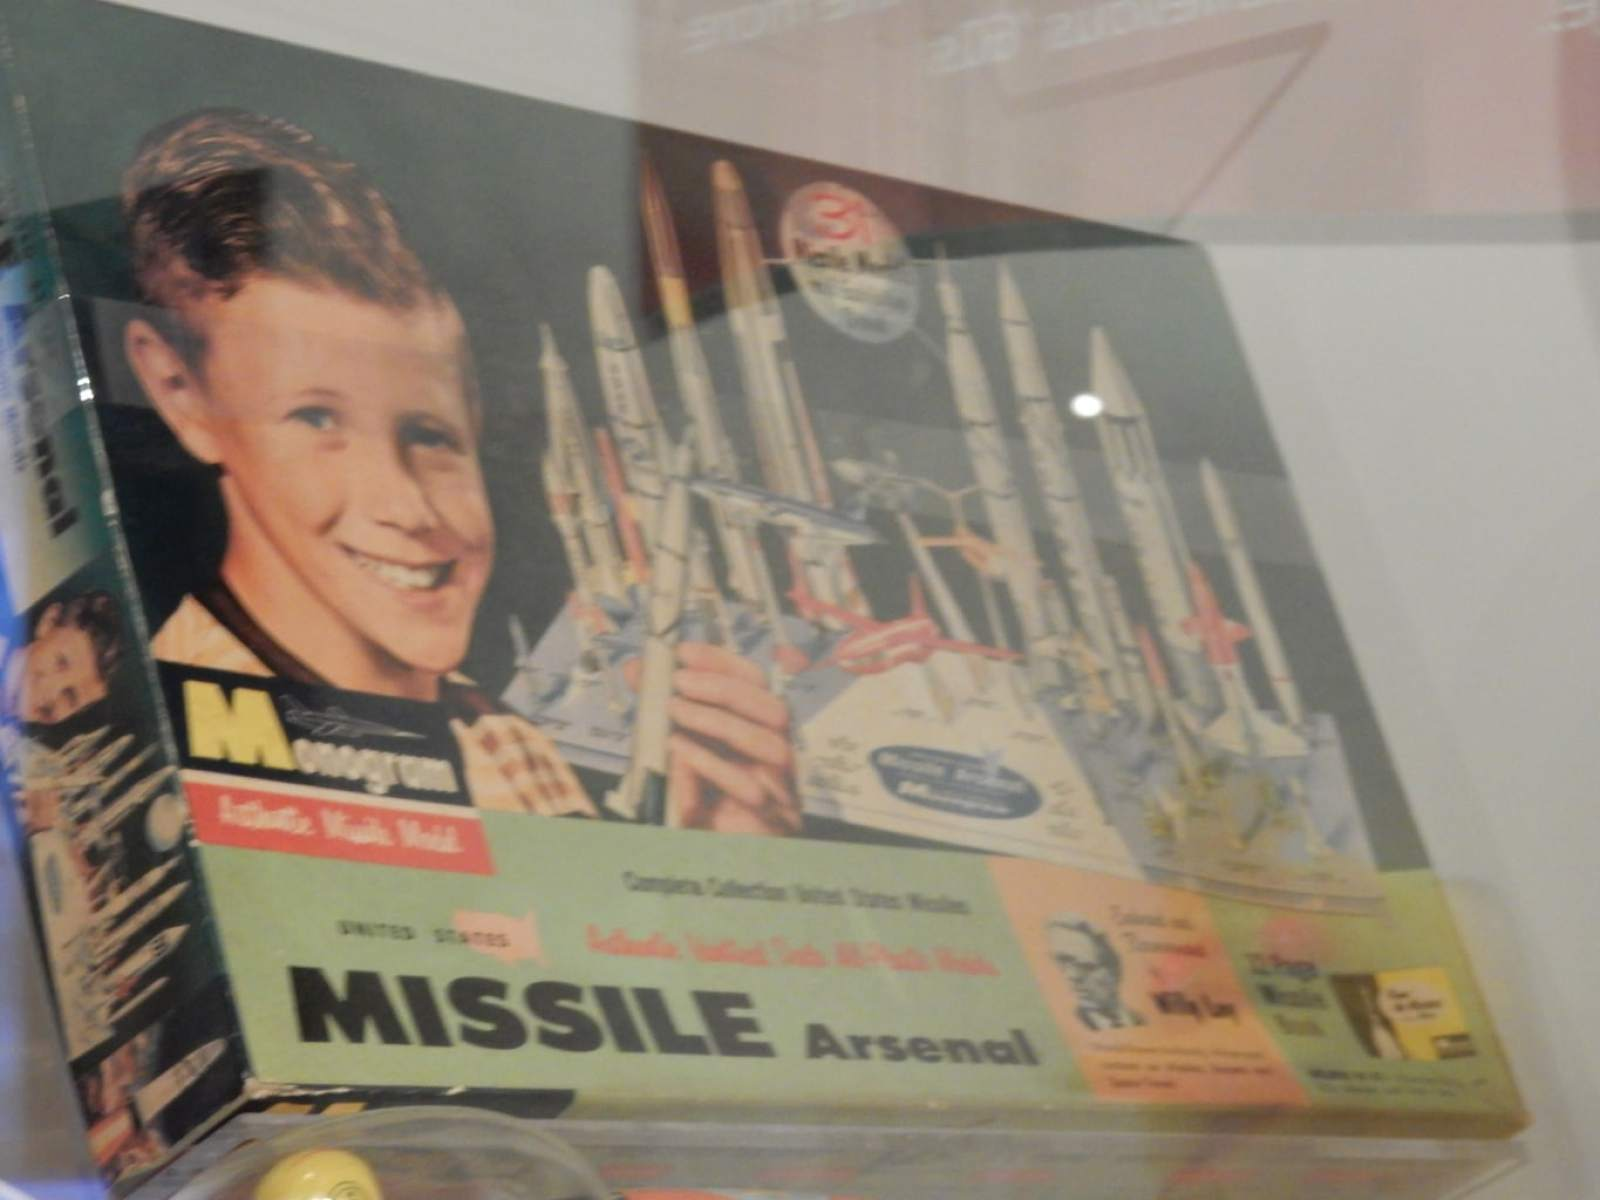 Missile Arsenal Game Strong Museum Rochester NY